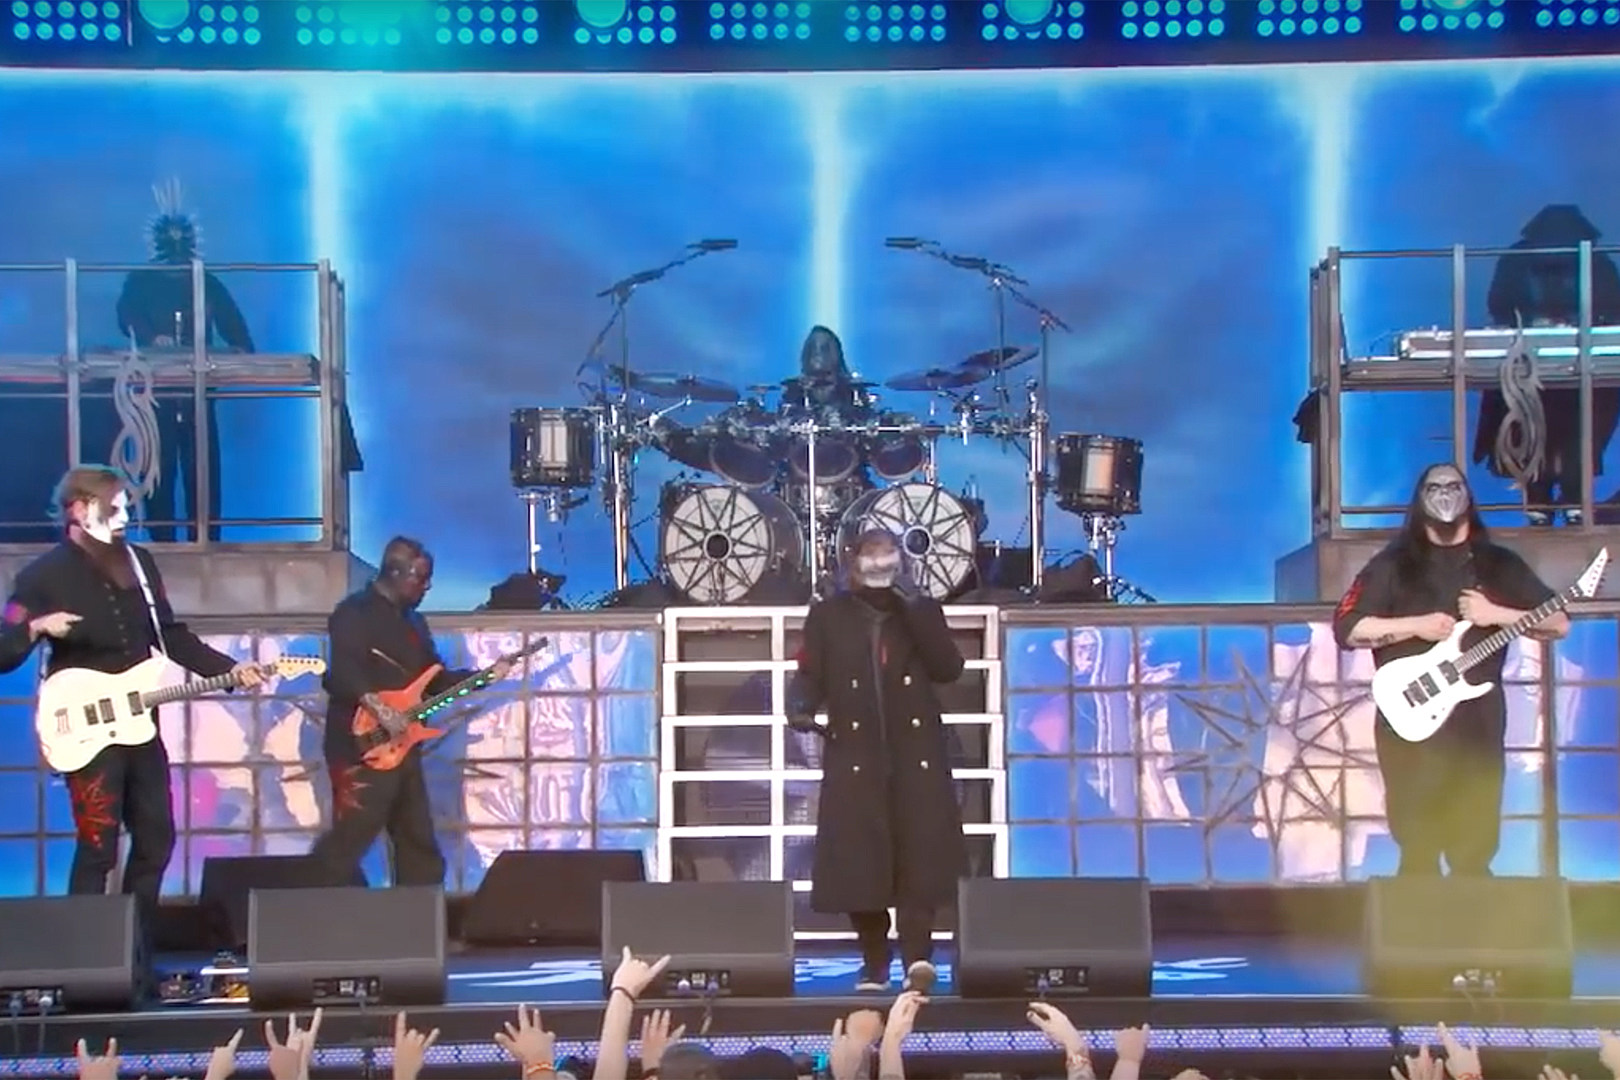 Watch Slipknot Perform 'Unsainted' + 'All Out Life' on 'Jimmy Kimmel Live'